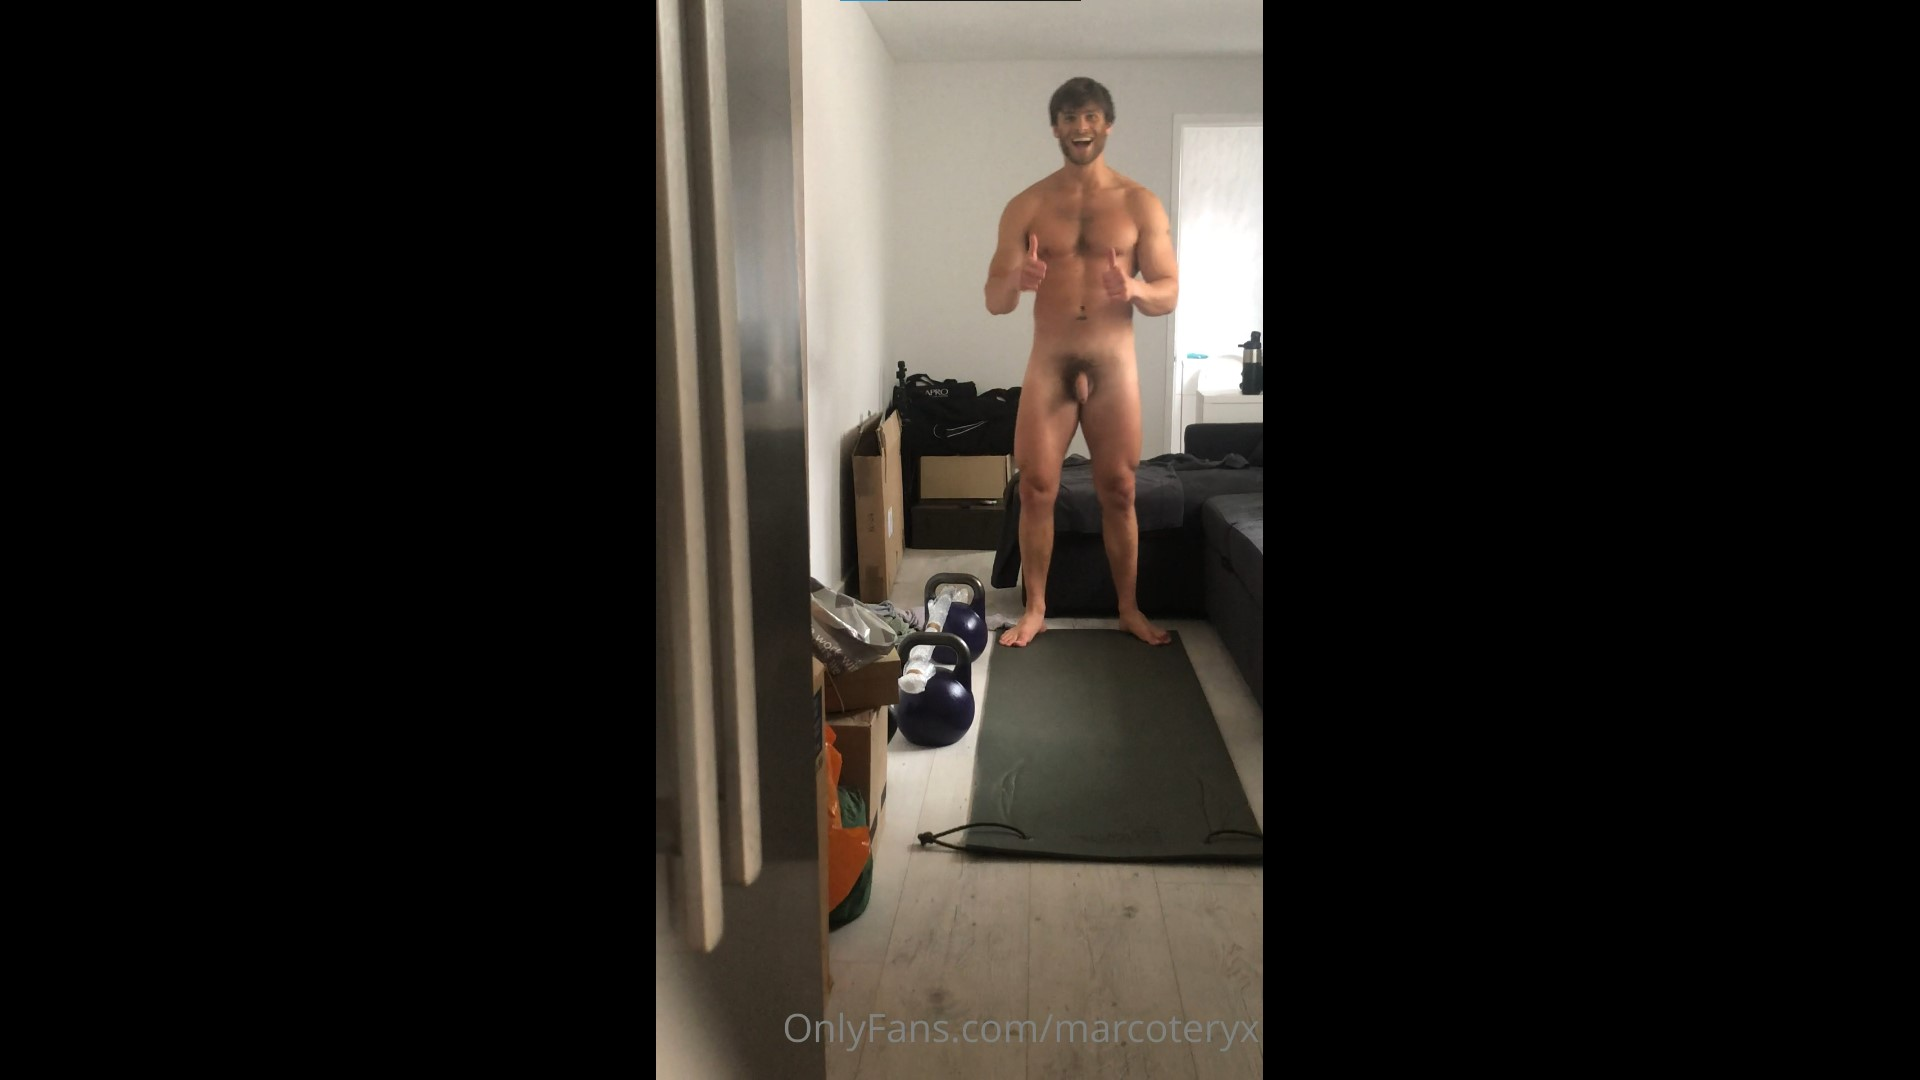 Working out nude - Marco D'Andrea (marcoteryx)